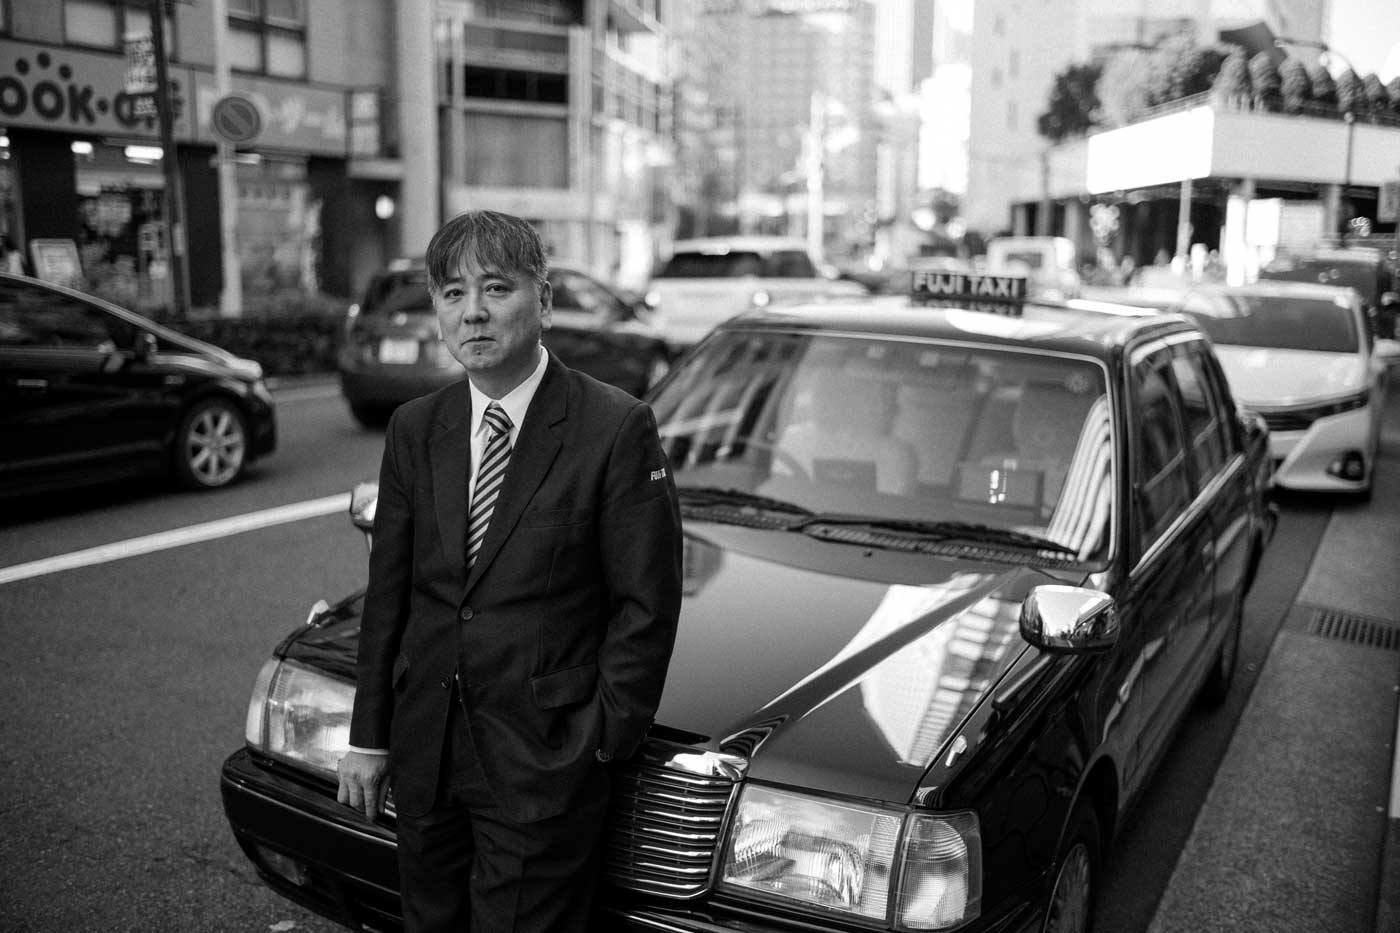 tokyo-2019-trip-japan-summilux-11663-FLE-35mm-f1.4-asph-leica-m10-digital-rangefinder-bw-mood-travel-blog-journal-taxi-driver-portrait-bw